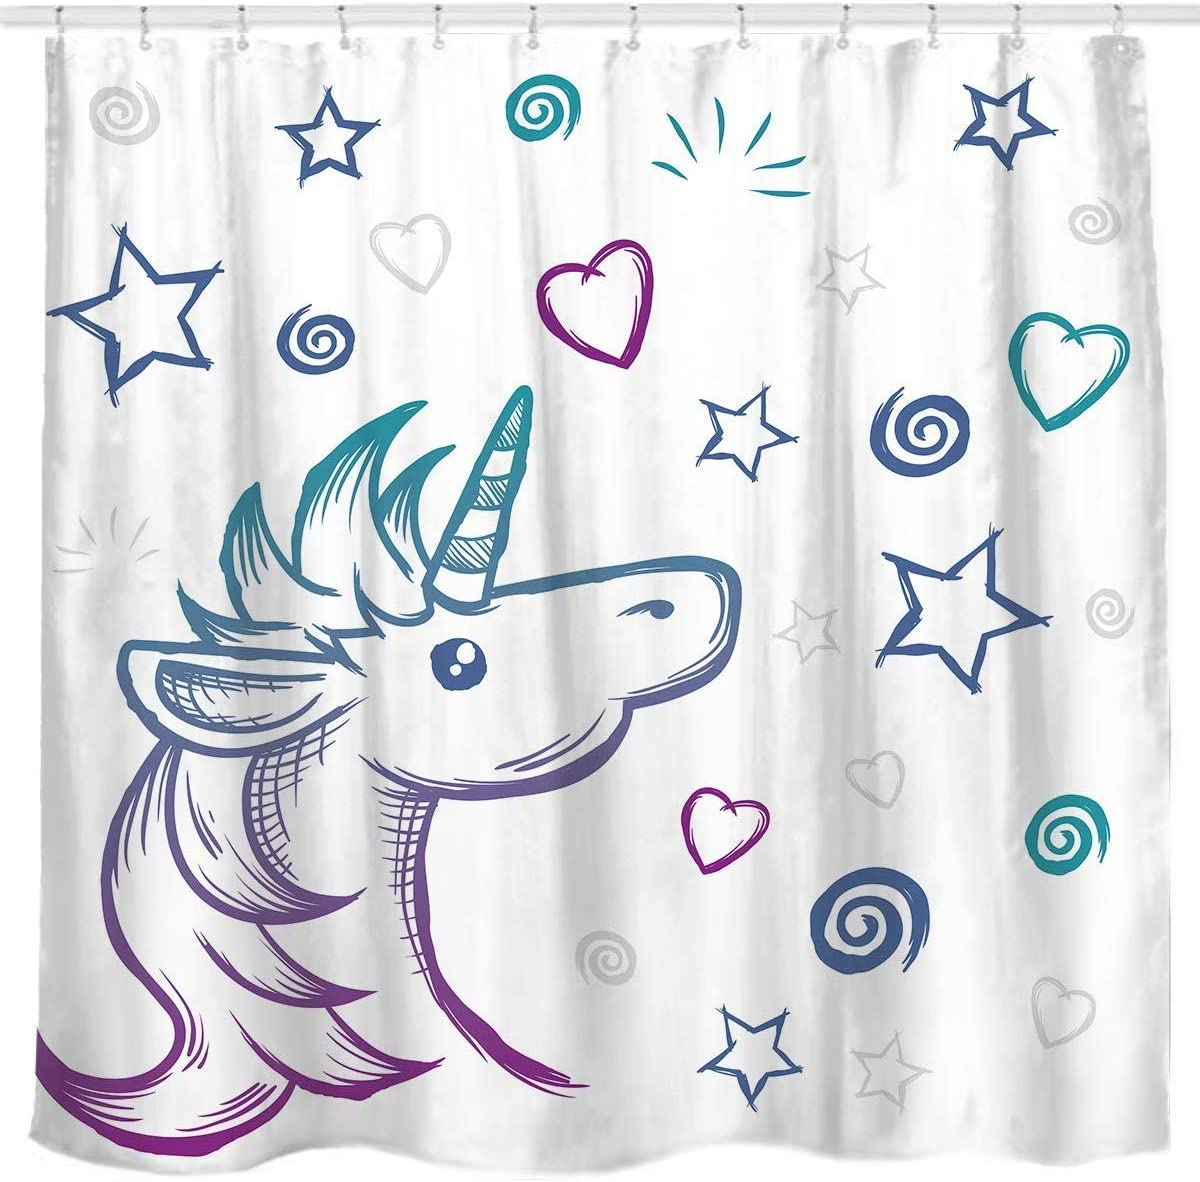 Amazon Com Cdhbh Unicorn Fabric Shower Curtain With Star Machine Wash For Children S Bathroom Decoration Durable And Easy To Clean Waterproof Fabric For Bathroom Shower Hotel Home Kitchen